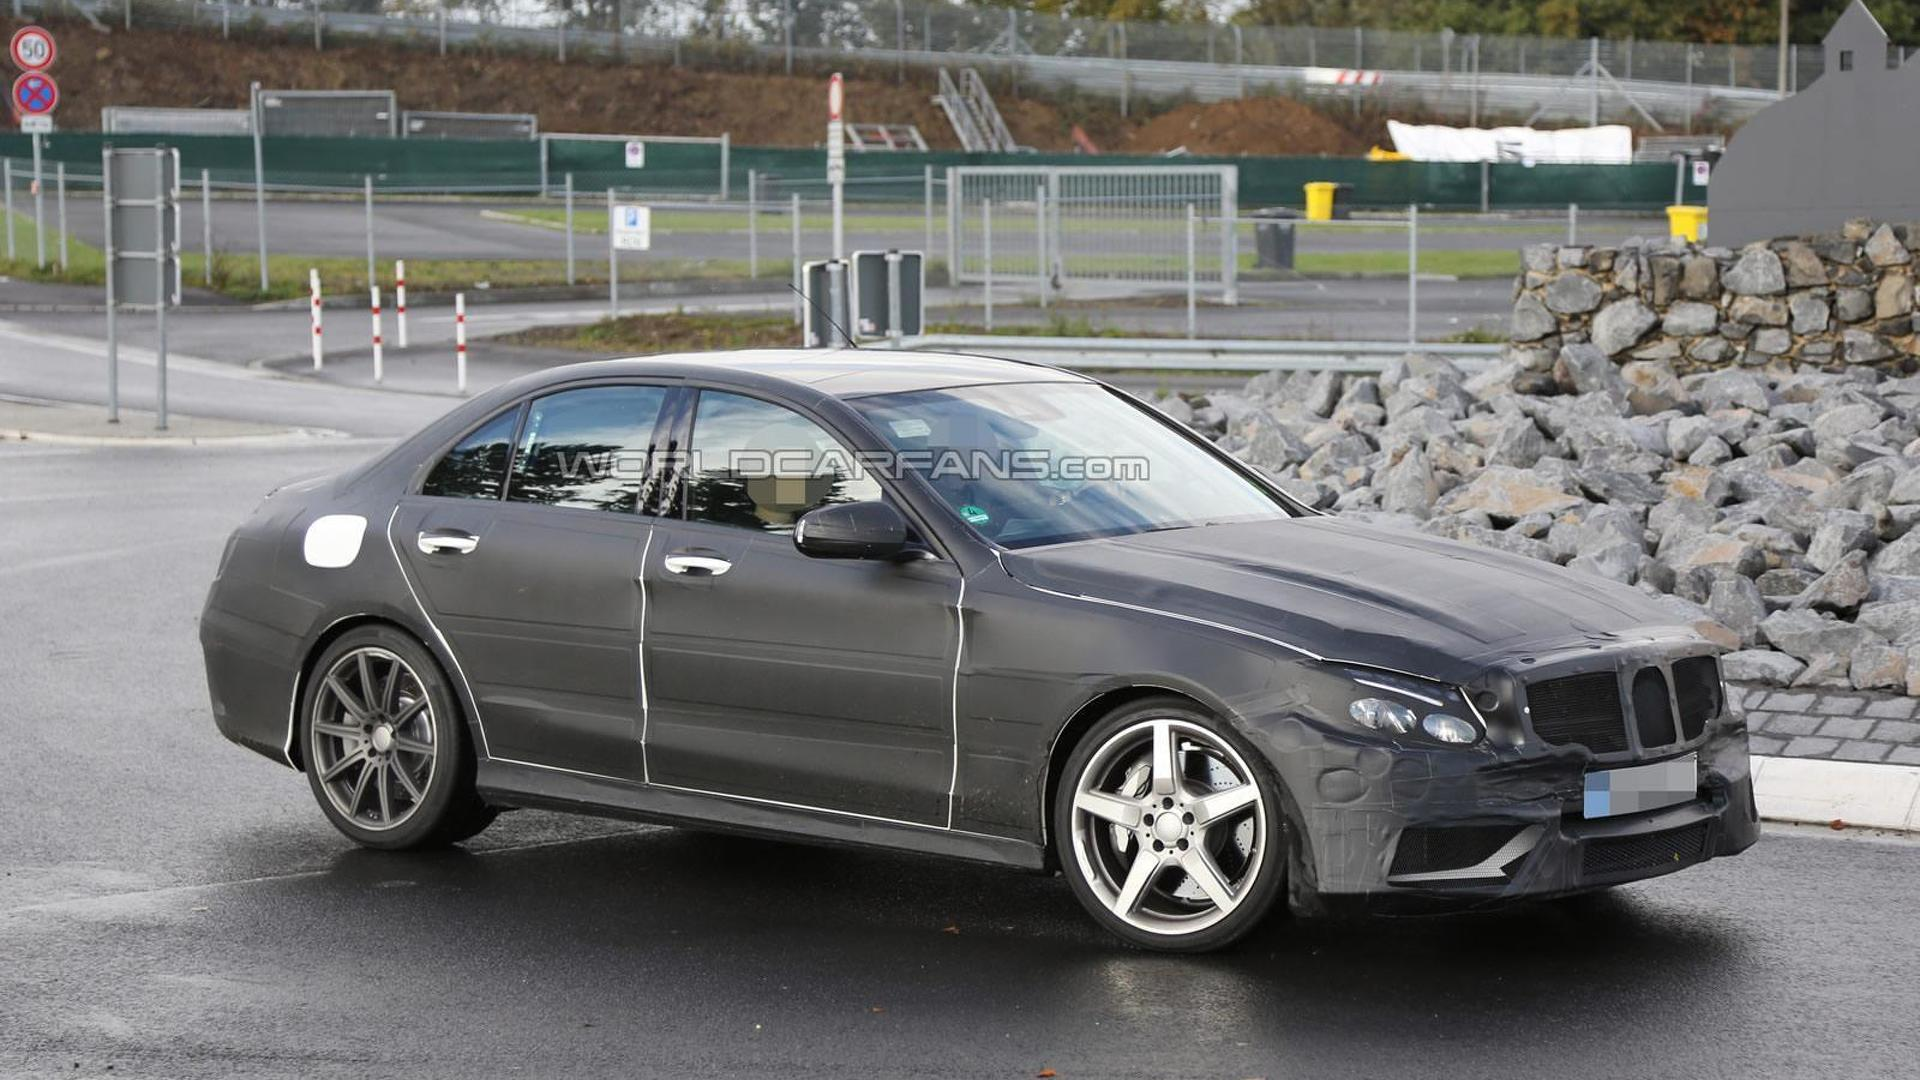 2014 Mercedes-Benz C63 AMG spied near the 'Ring